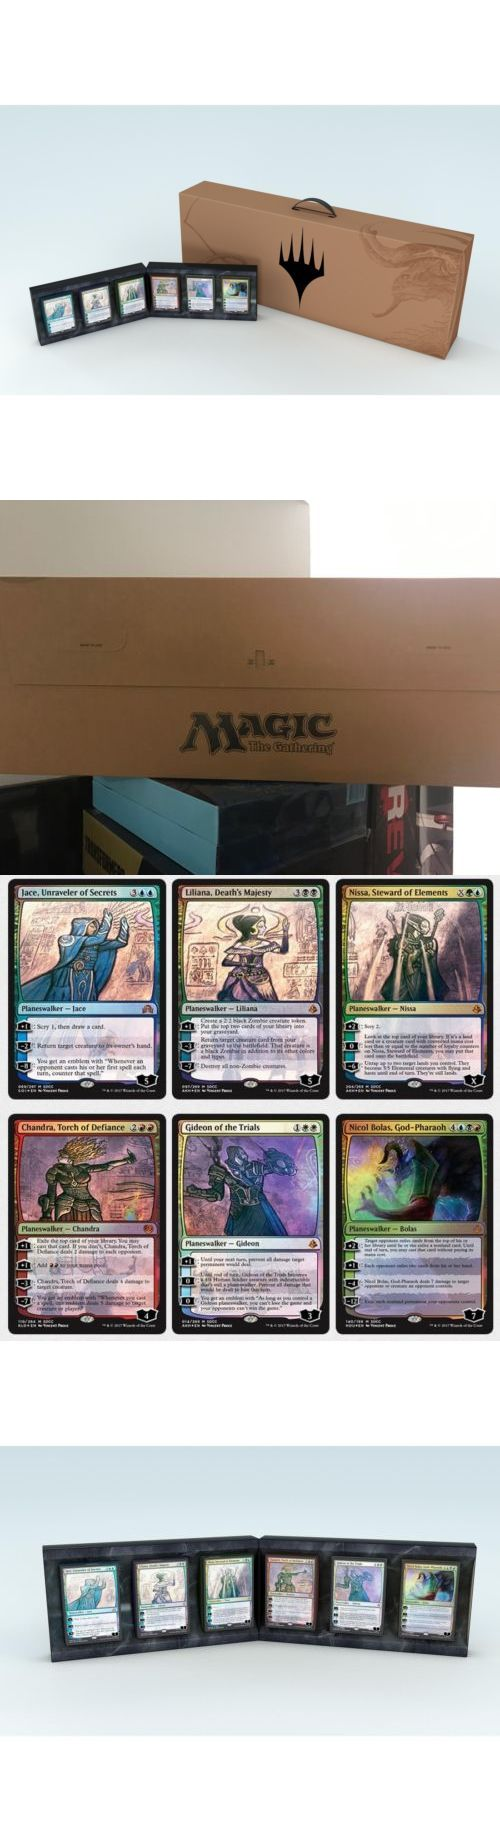 MTG Complete Sets 19114: Sdcc 2017 Magic The Gathering 2017 Planeswalker Pack Cards W Mondo Print In Hand -> BUY IT NOW ONLY: $379.95 on eBay!